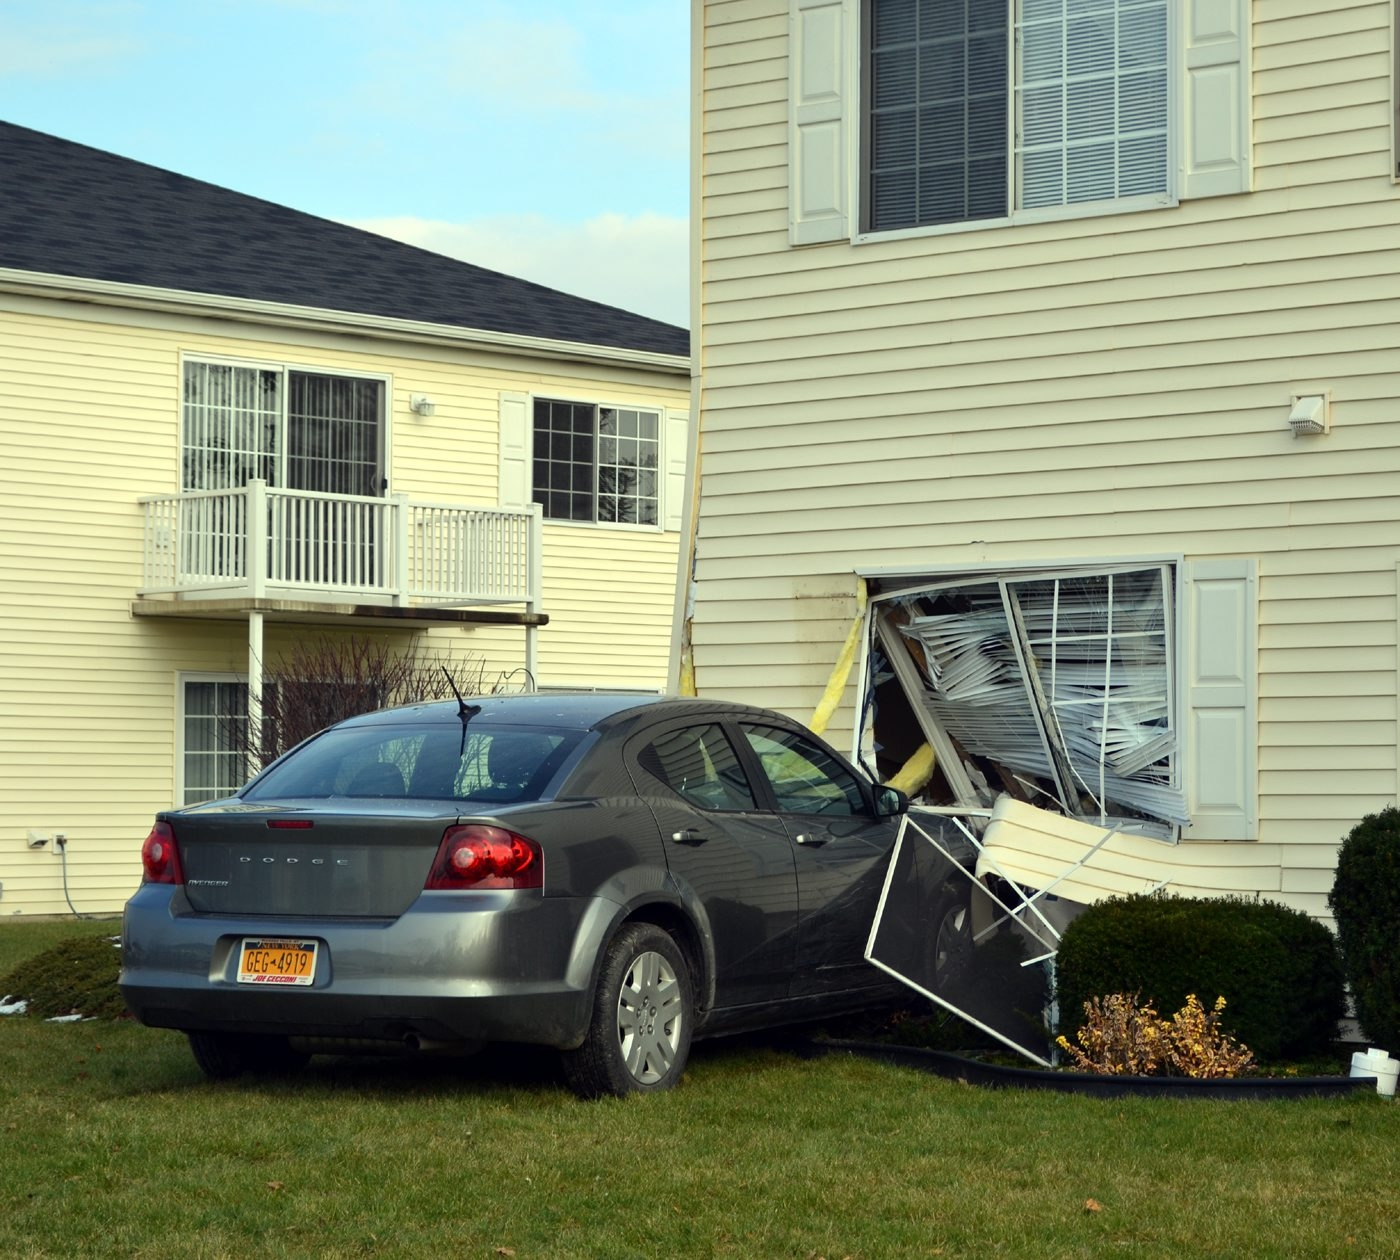 Niagara Falls condemned this apartment in the Vincent Morello Senior Housing complex after an 84-year-old woman drove her 2013 Dodge Avenger into it Wednesday.